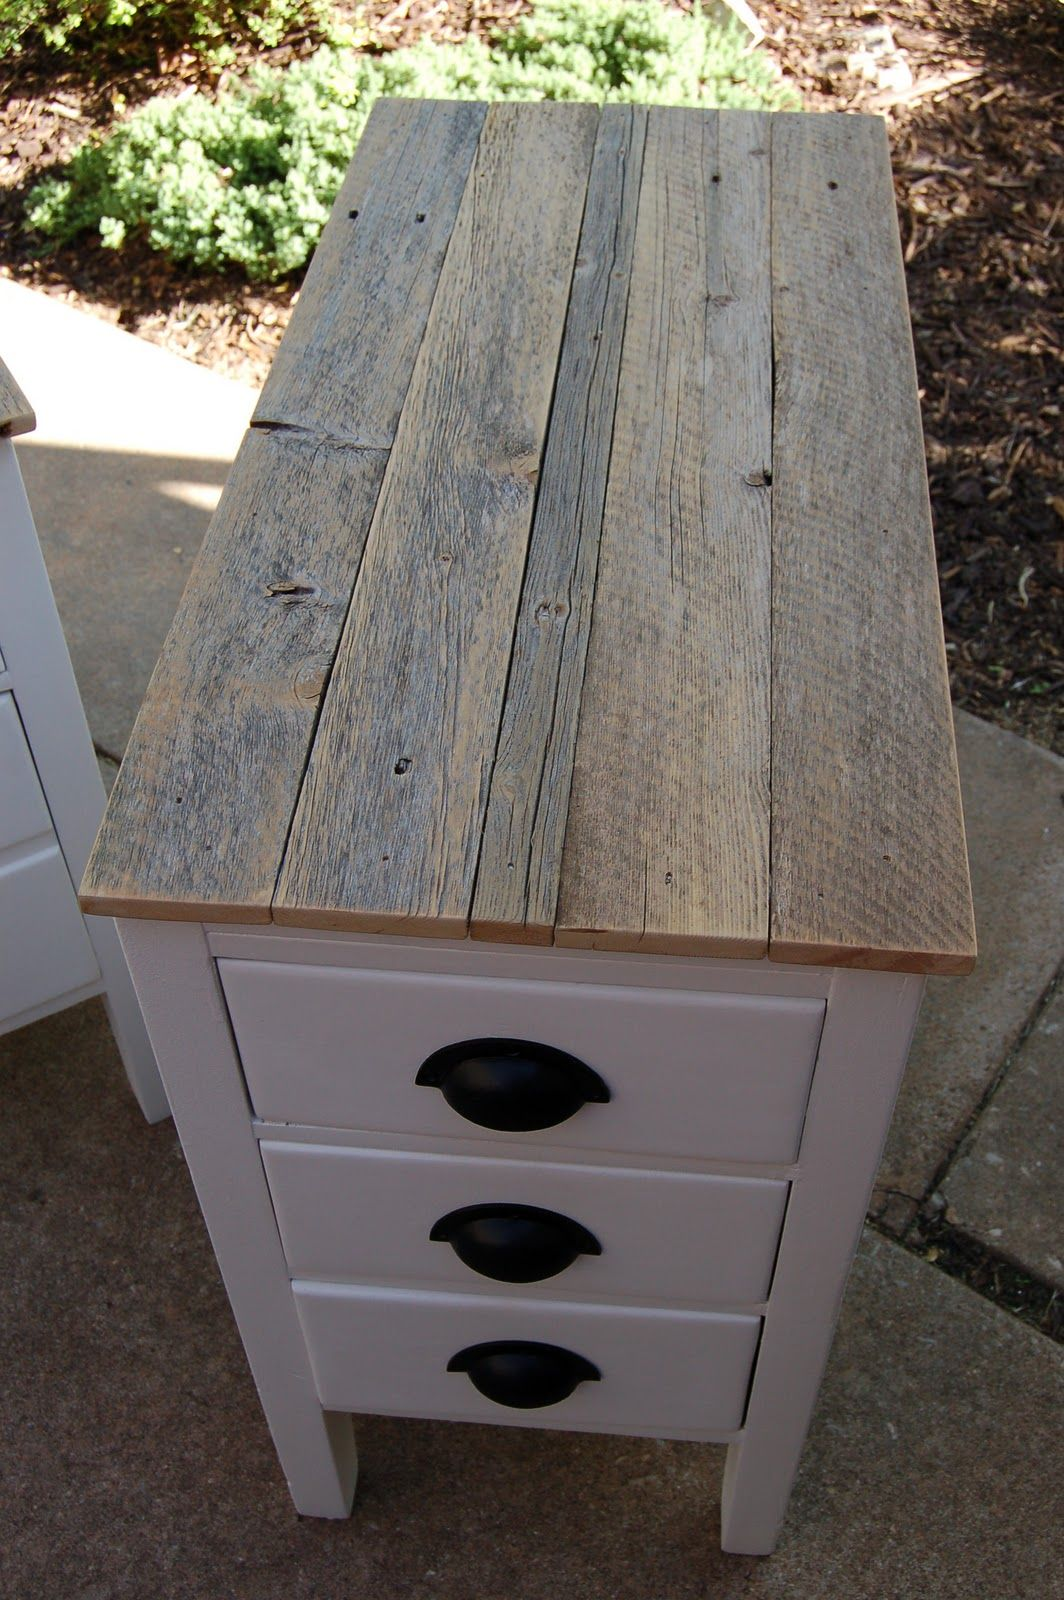 Gives me an idea for a couchside table two old bedside tables